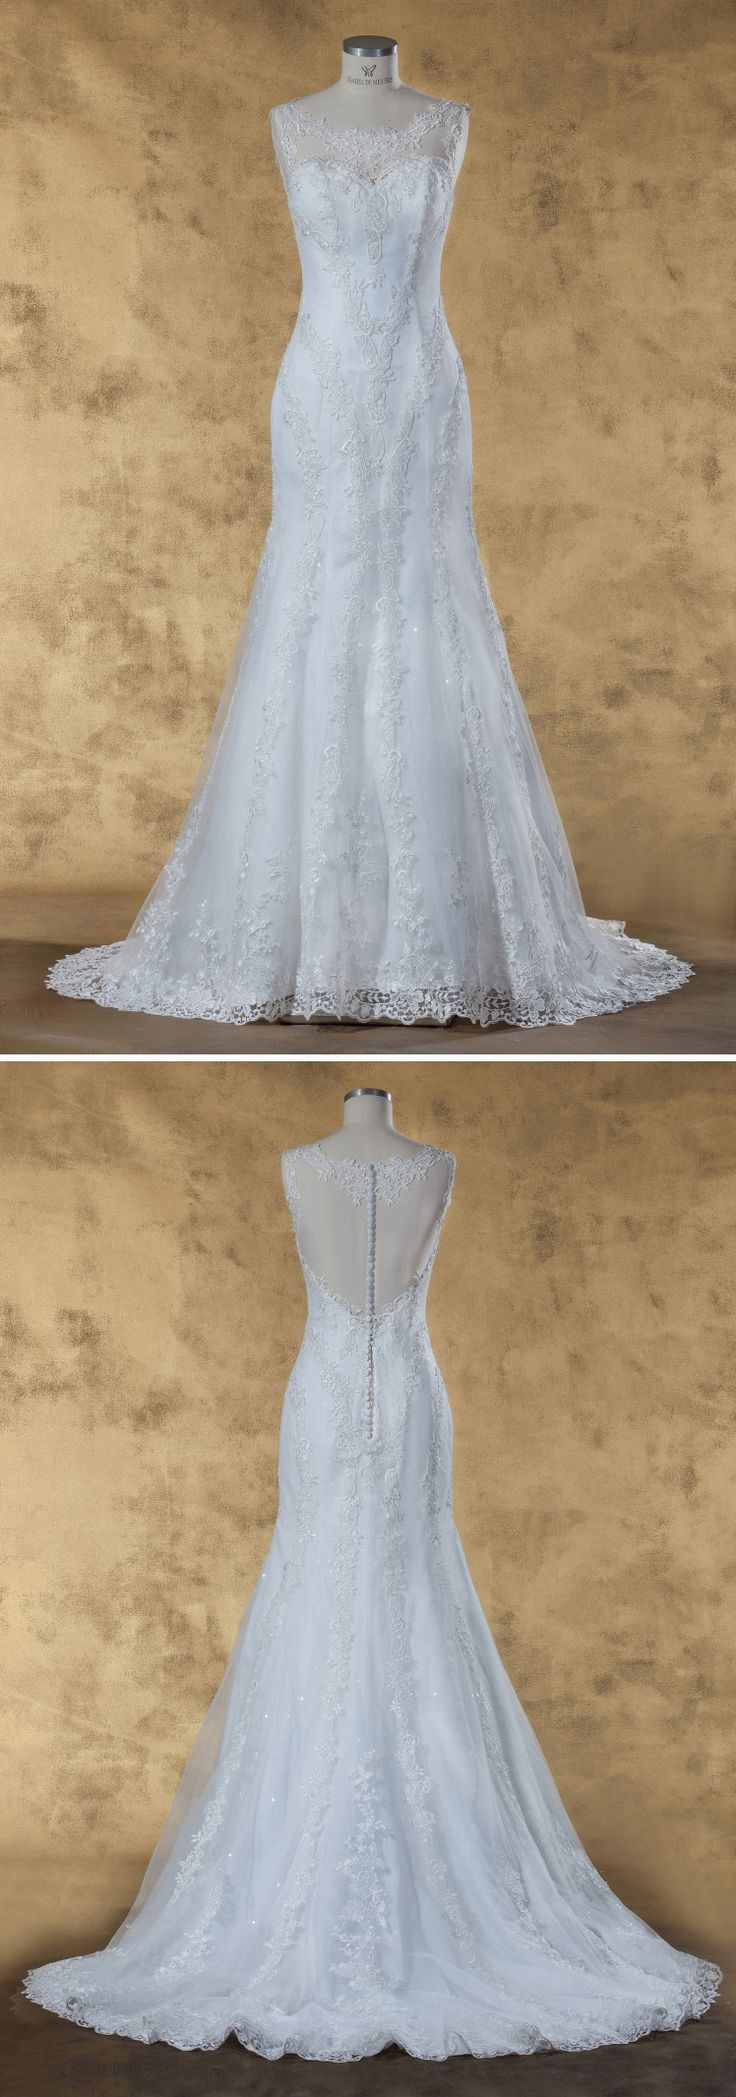 The 129 best Exklusive Brautmode images on Pinterest   Bridle dress ...